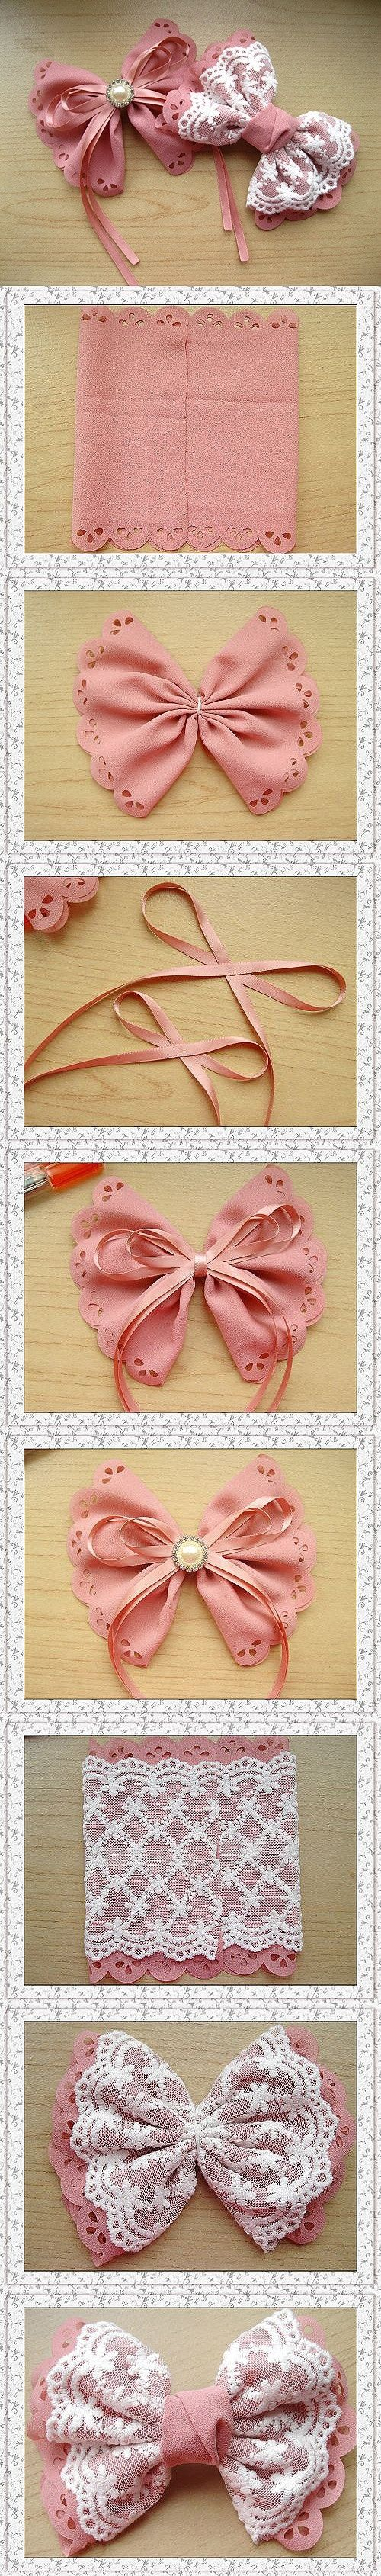 DIY Pretty Bow Pictures, Photos, and Images for Facebook, Tumblr, Pinterest, and Twitter